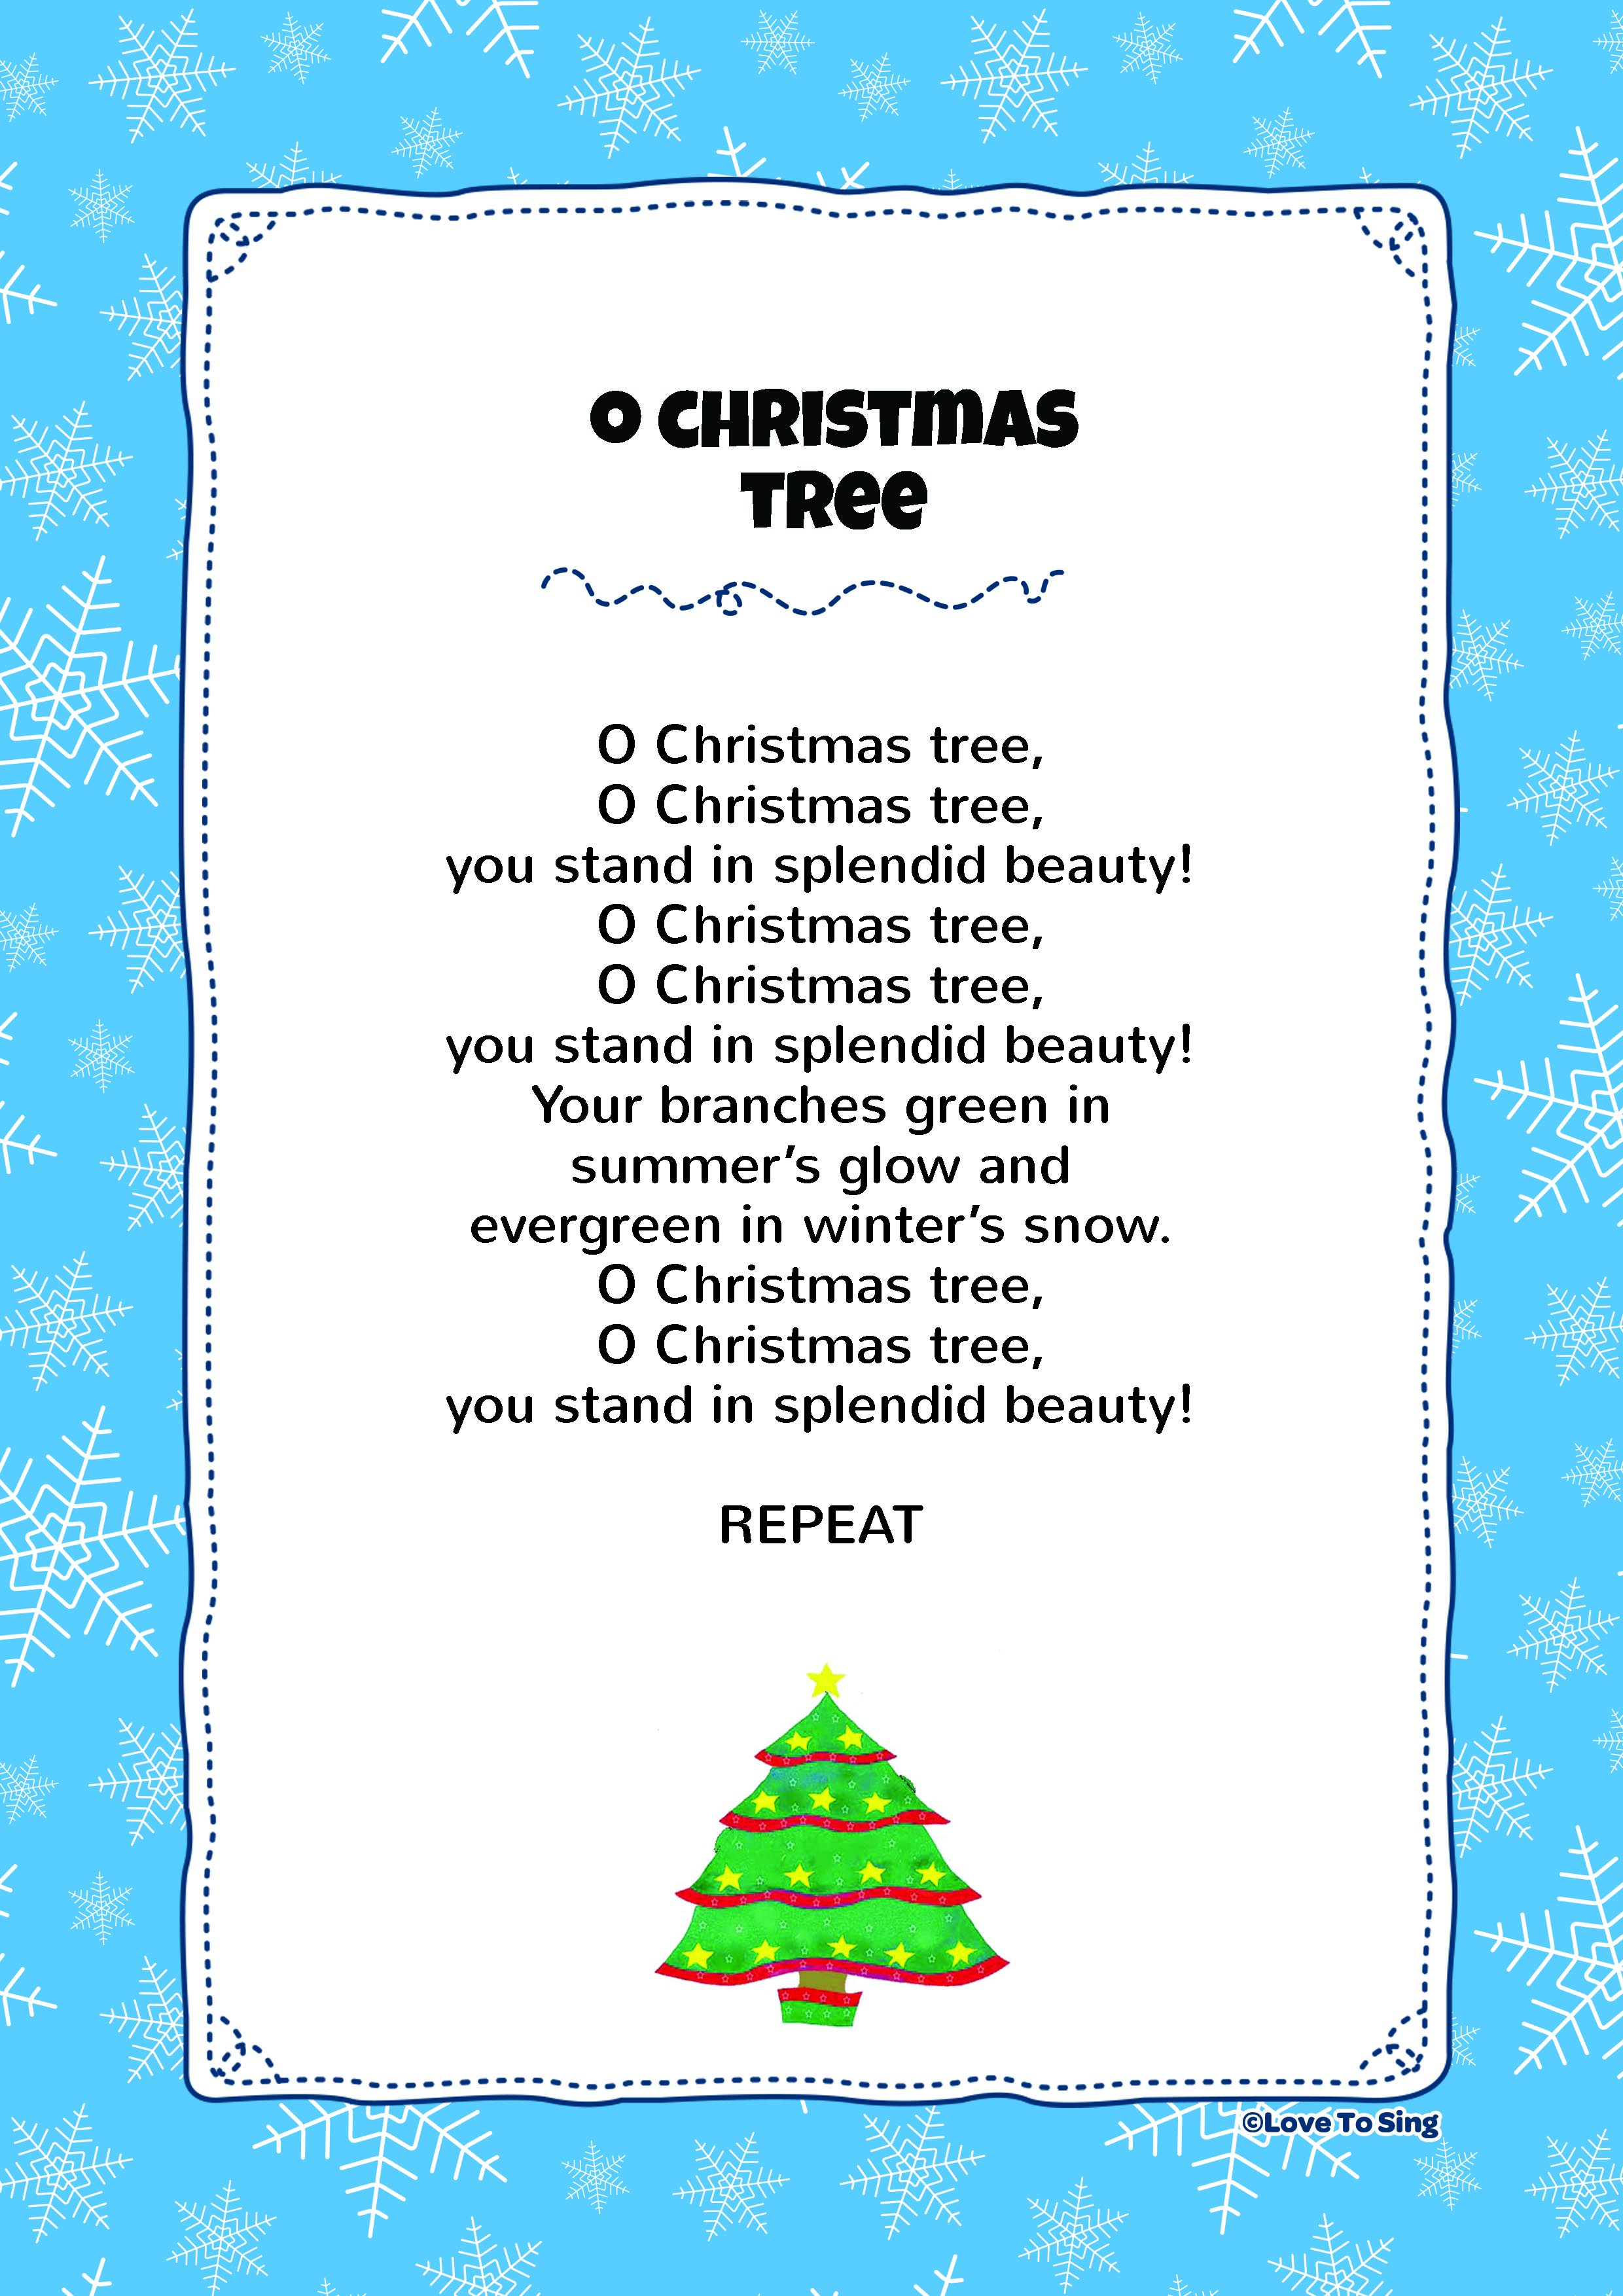 O Christmas Tree | Kids Video Song with FREE Lyrics & Activities!